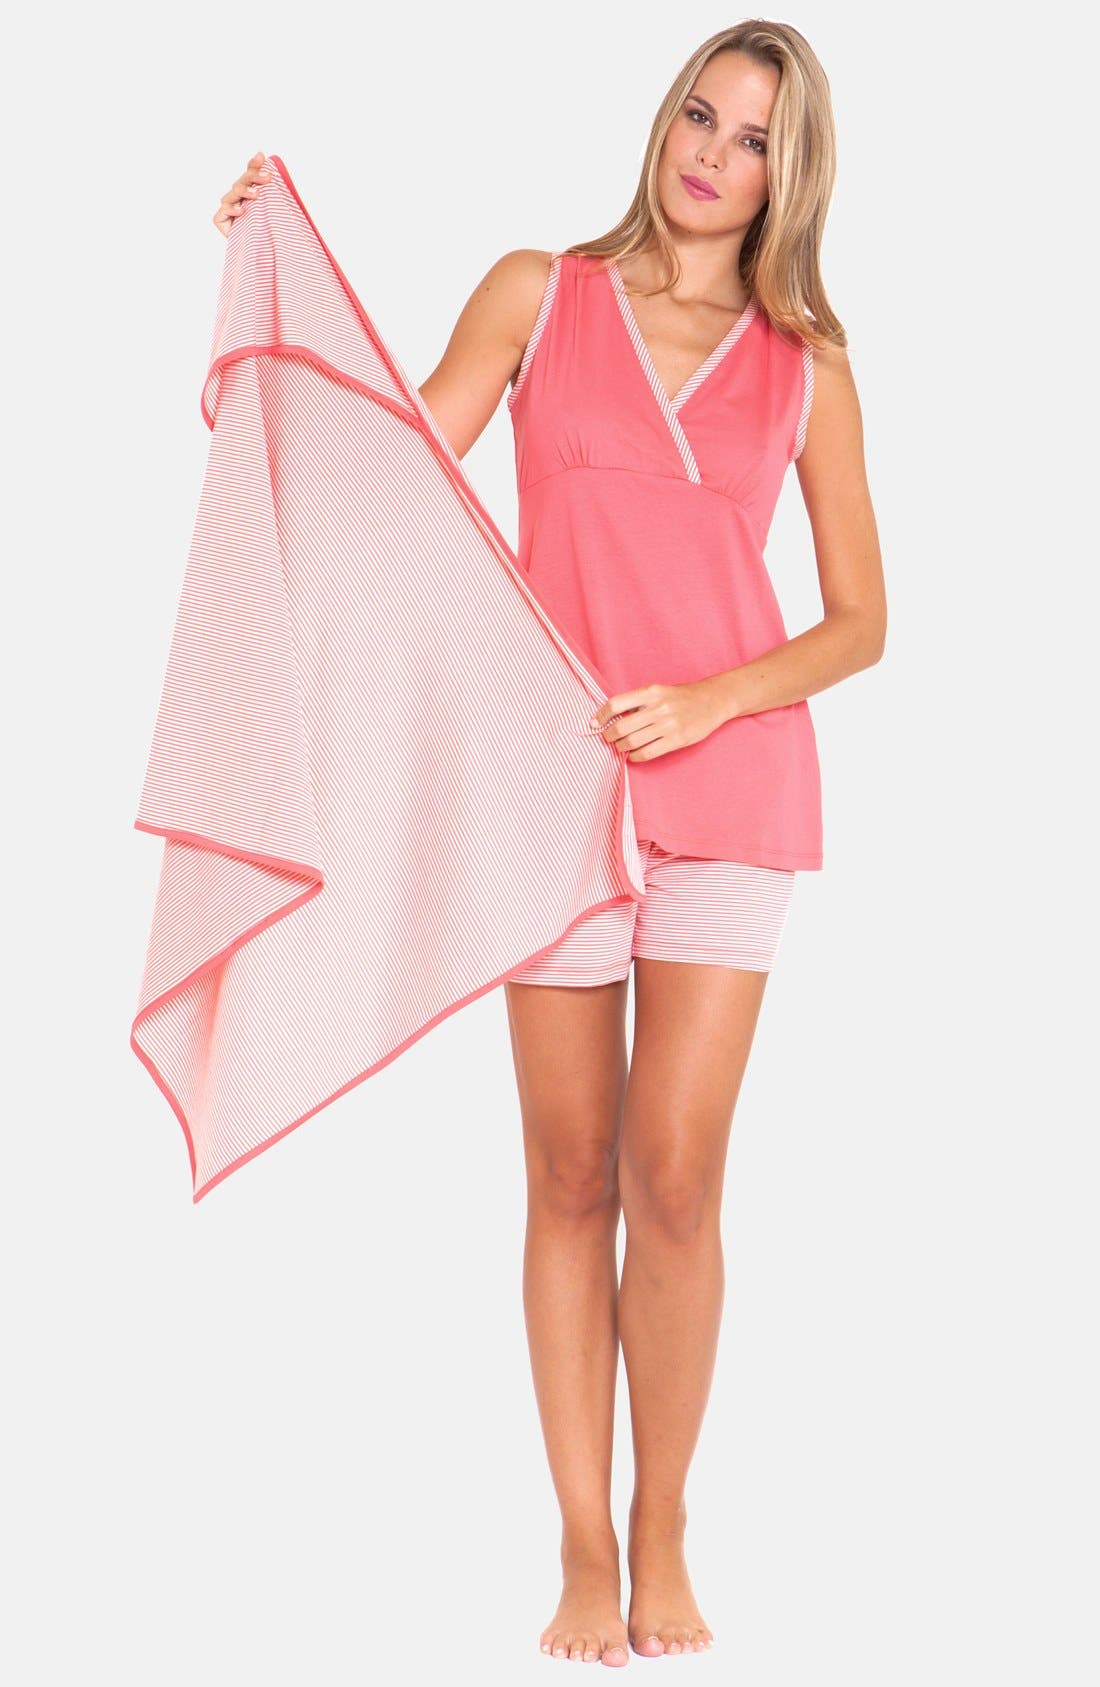 3-Piece Maternity Sleepwear Gift Set,                             Main thumbnail 1, color,                             Pink